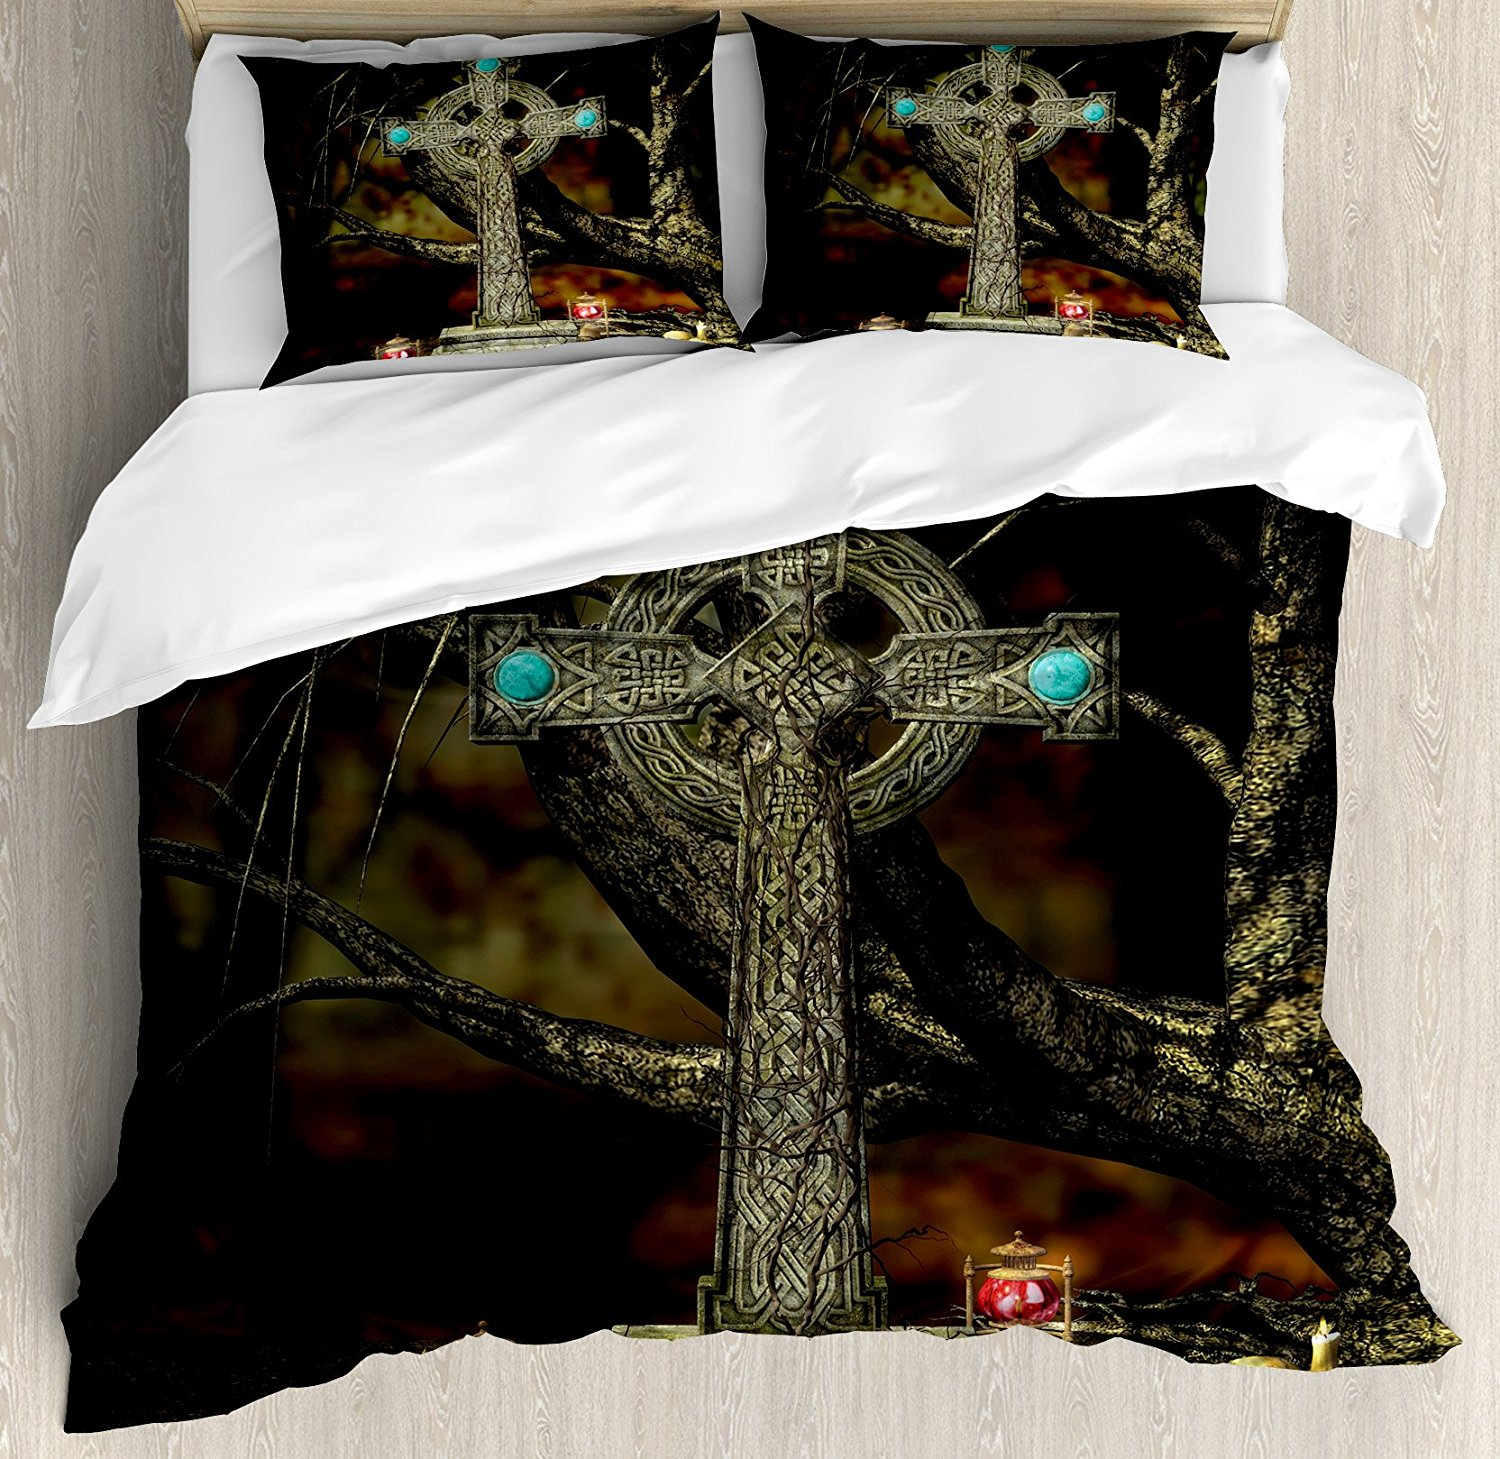 Gothic Decor Duvet Cover Set  Gothic Cross Tree Grave Skulls Tombstone Lanterns Graveyard Night Art  4 Piece Bedding Set